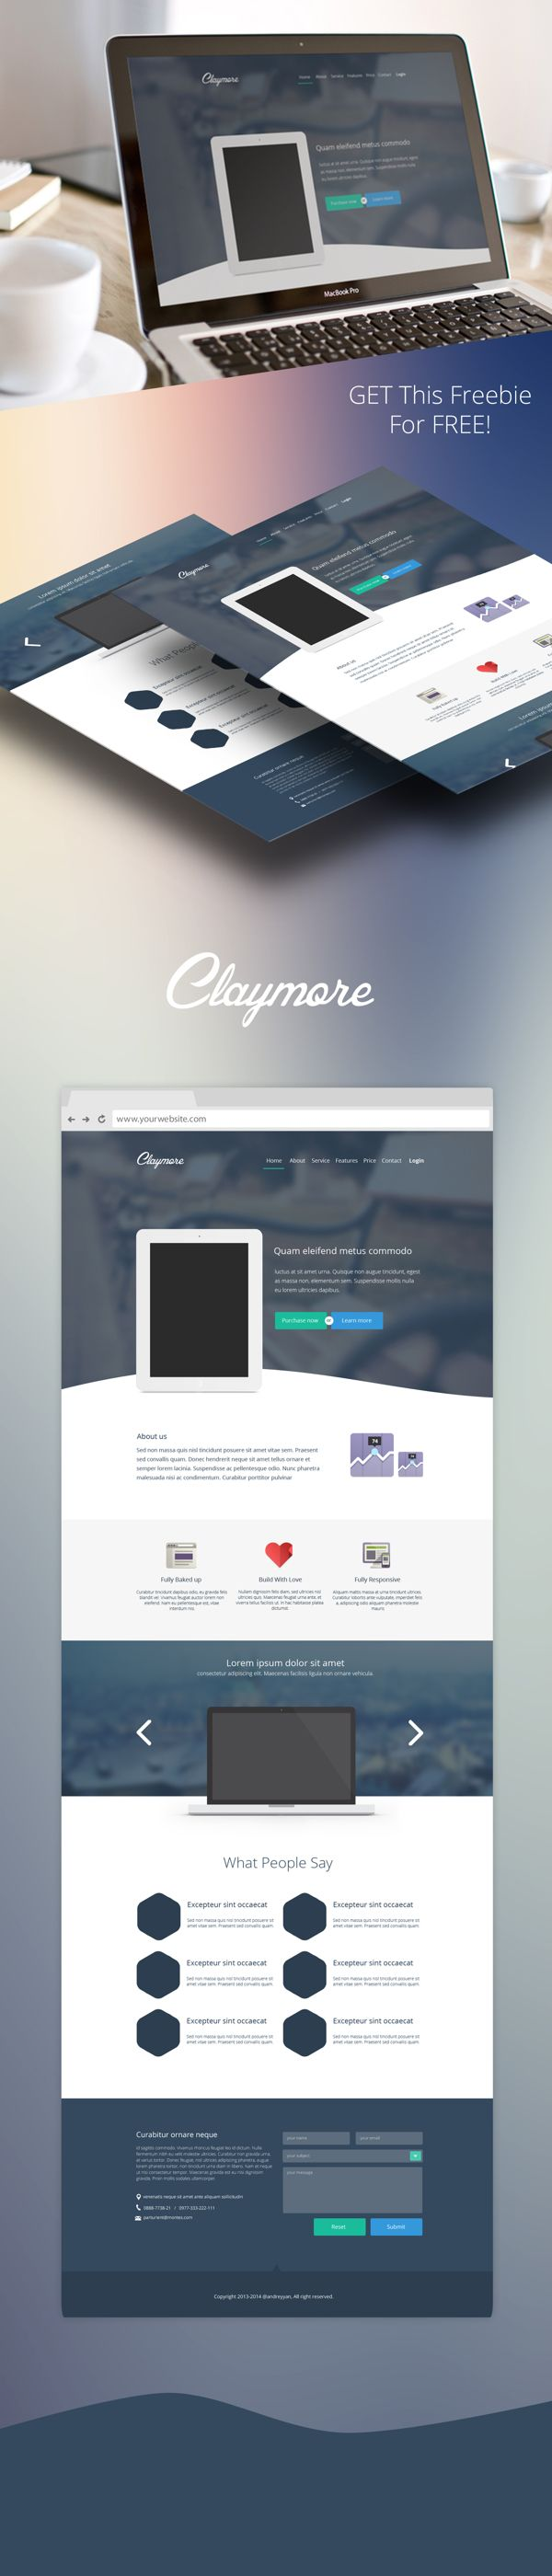 25+ Trendy New Landing Page & Single Page Website/APP PSD ...